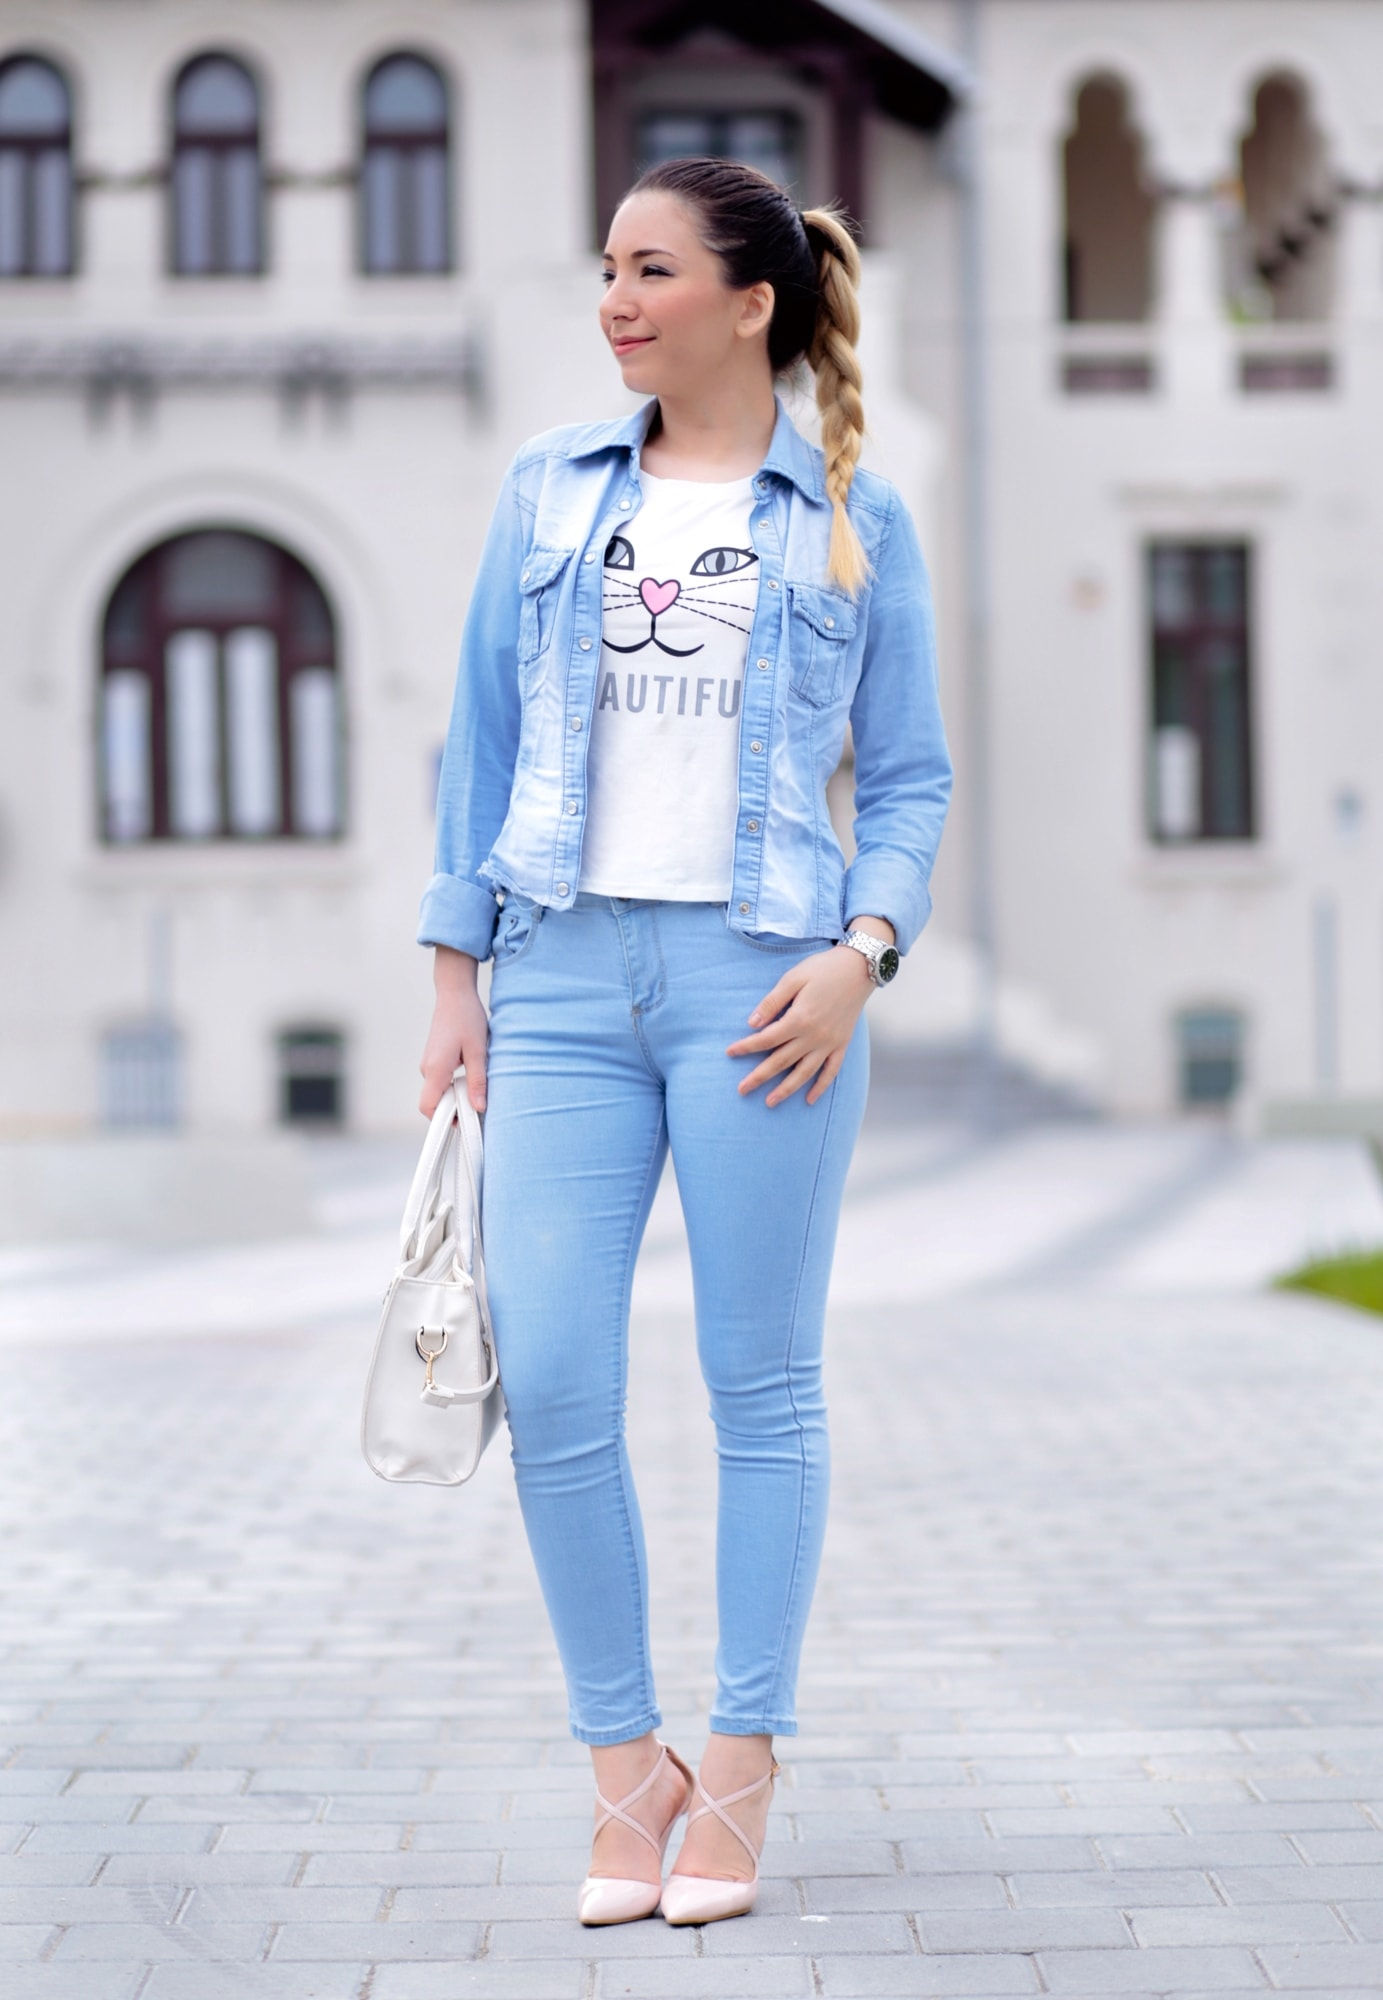 Street style - denim on denim, white kitty t shirt, romwe, pink nude shoes, heels, white bag, andreea ristea, fashion blogger, ootd